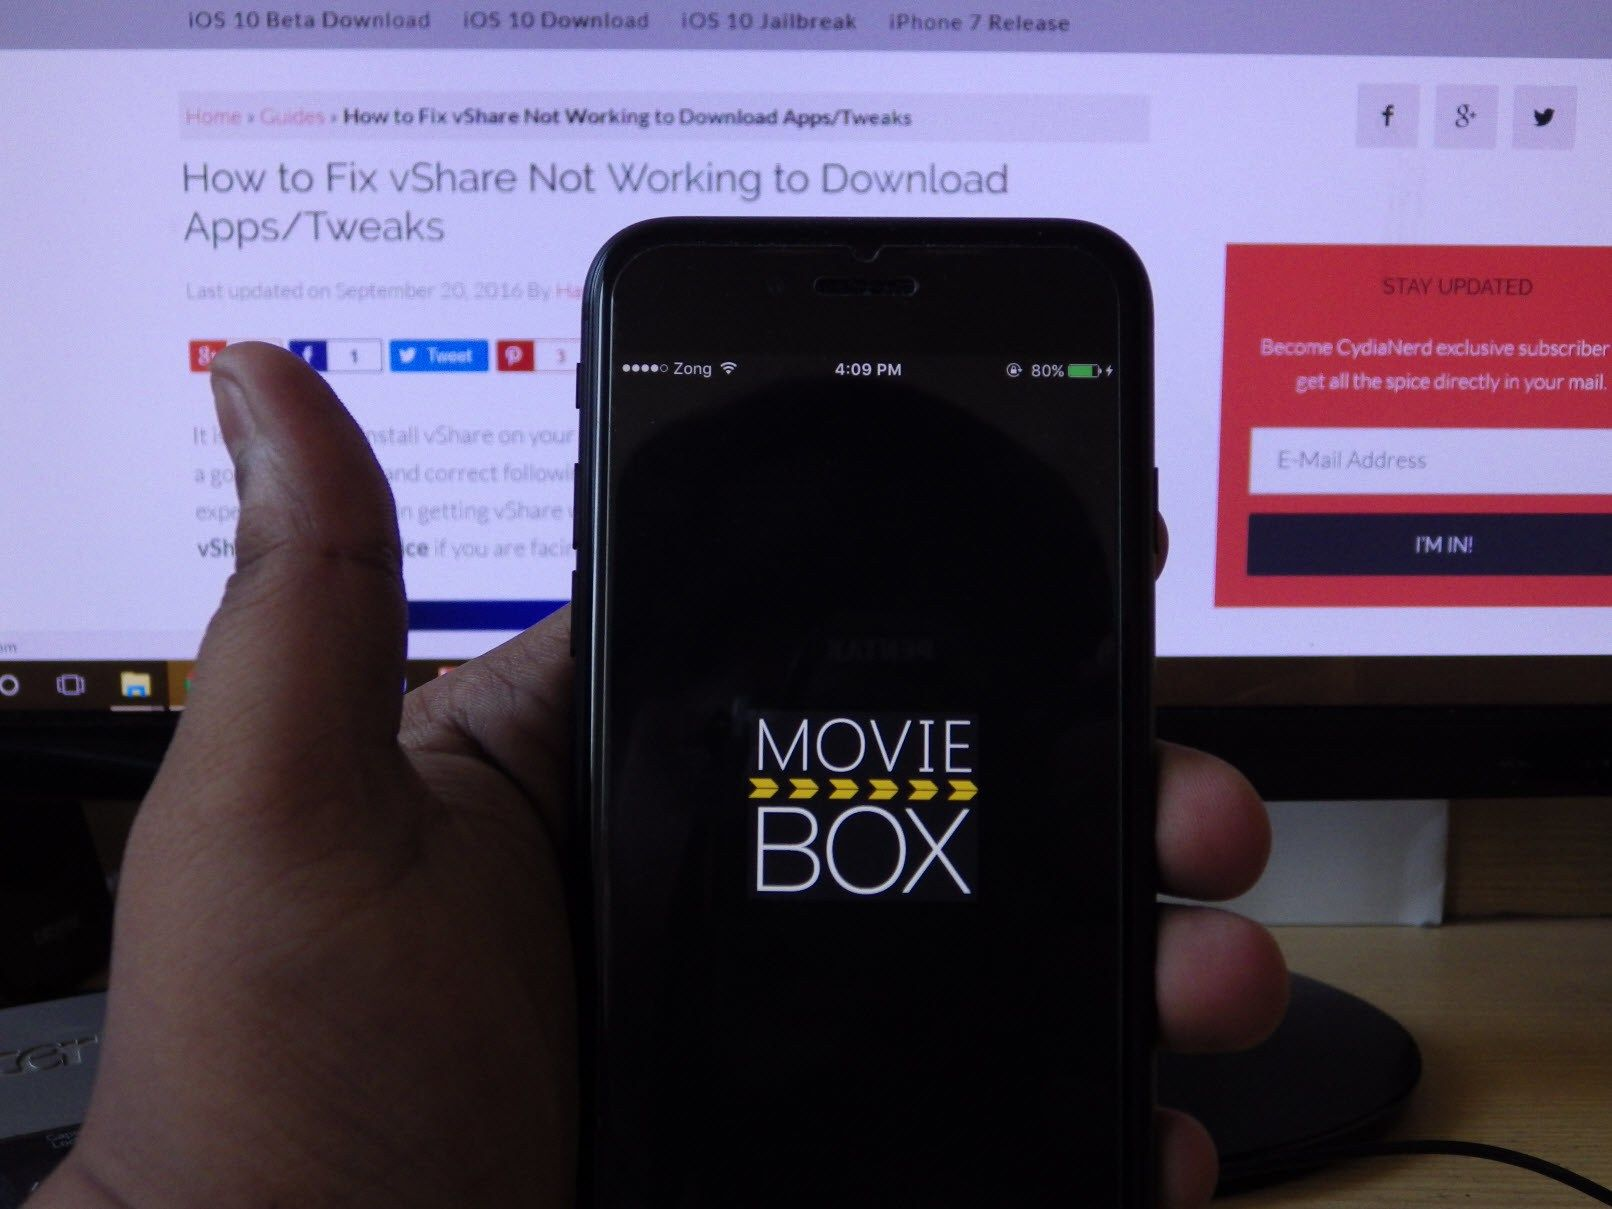 Download MovieBox for iOS 10 / 10.0.2 / 10.1 Without Jailbreak ...